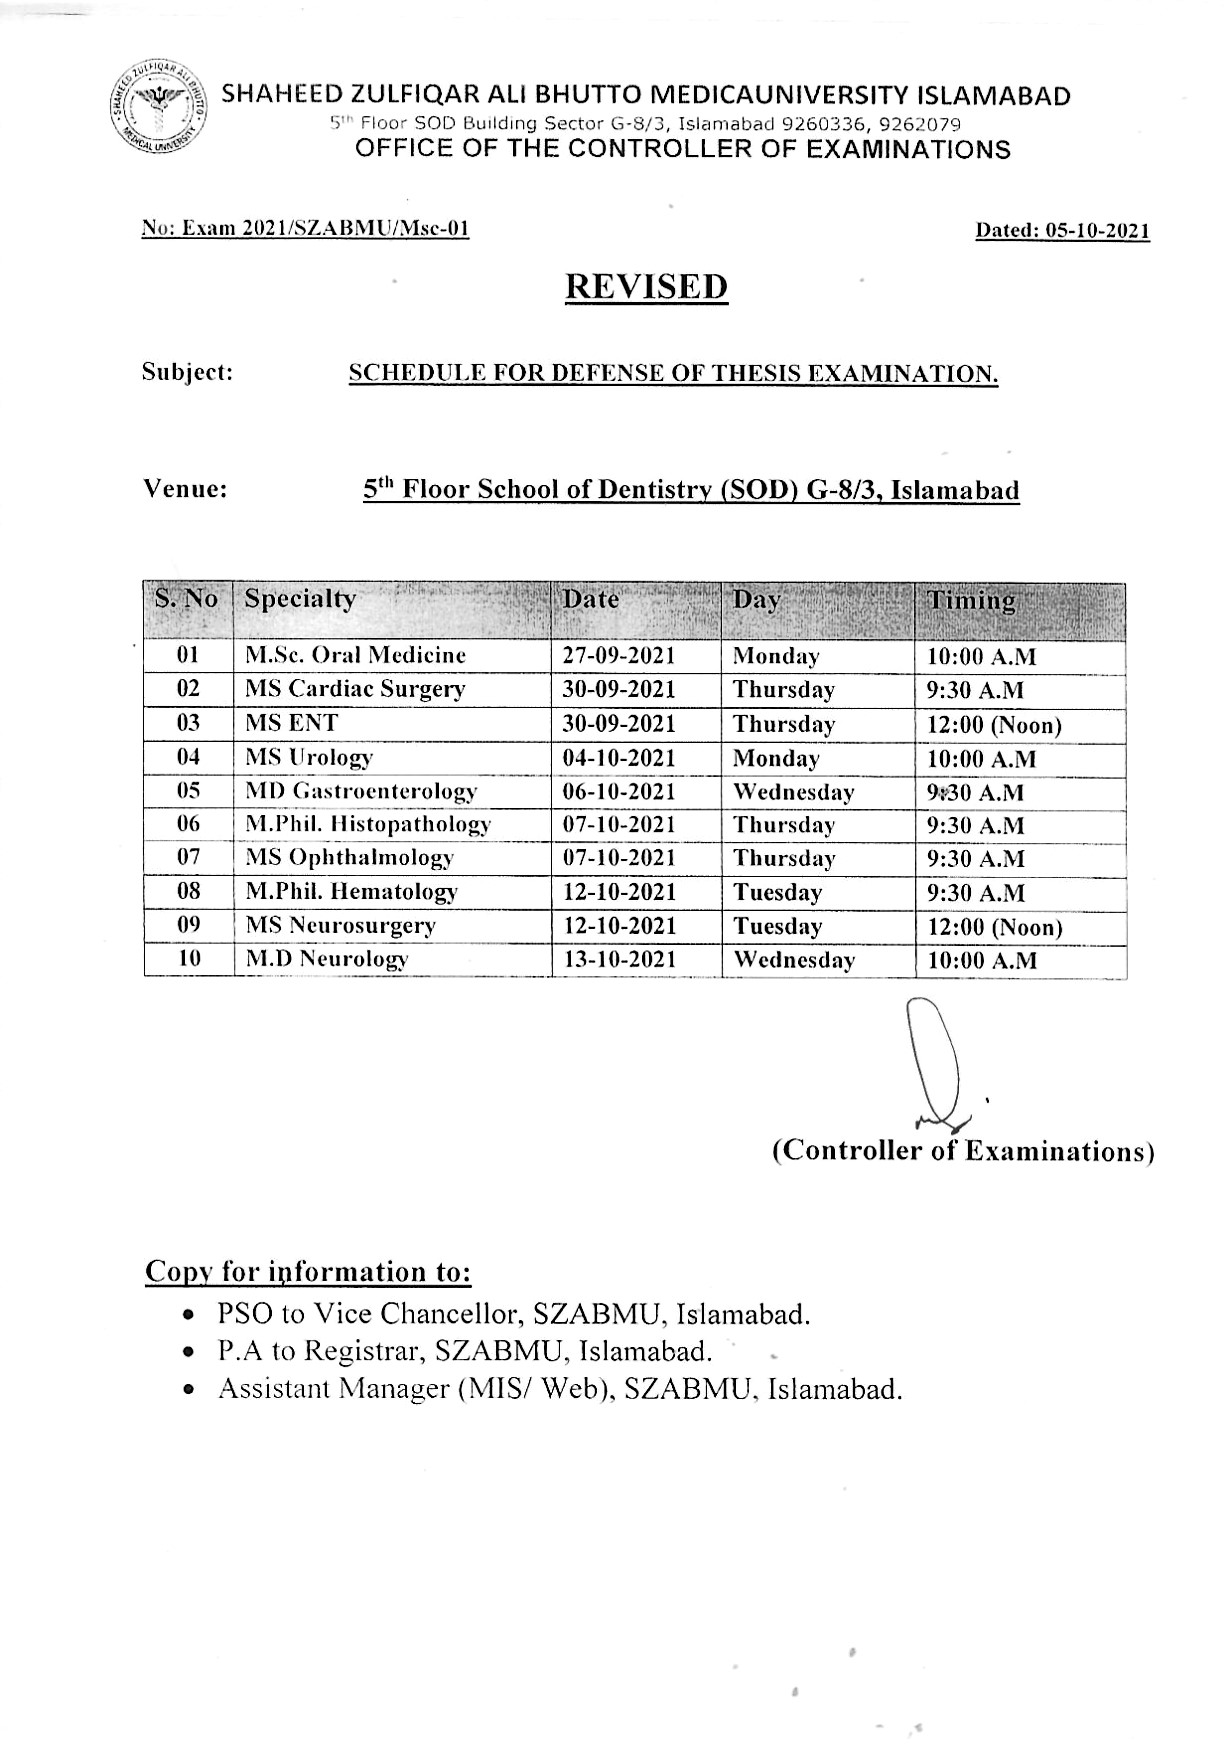 Schedule for defense of Thesis Examination